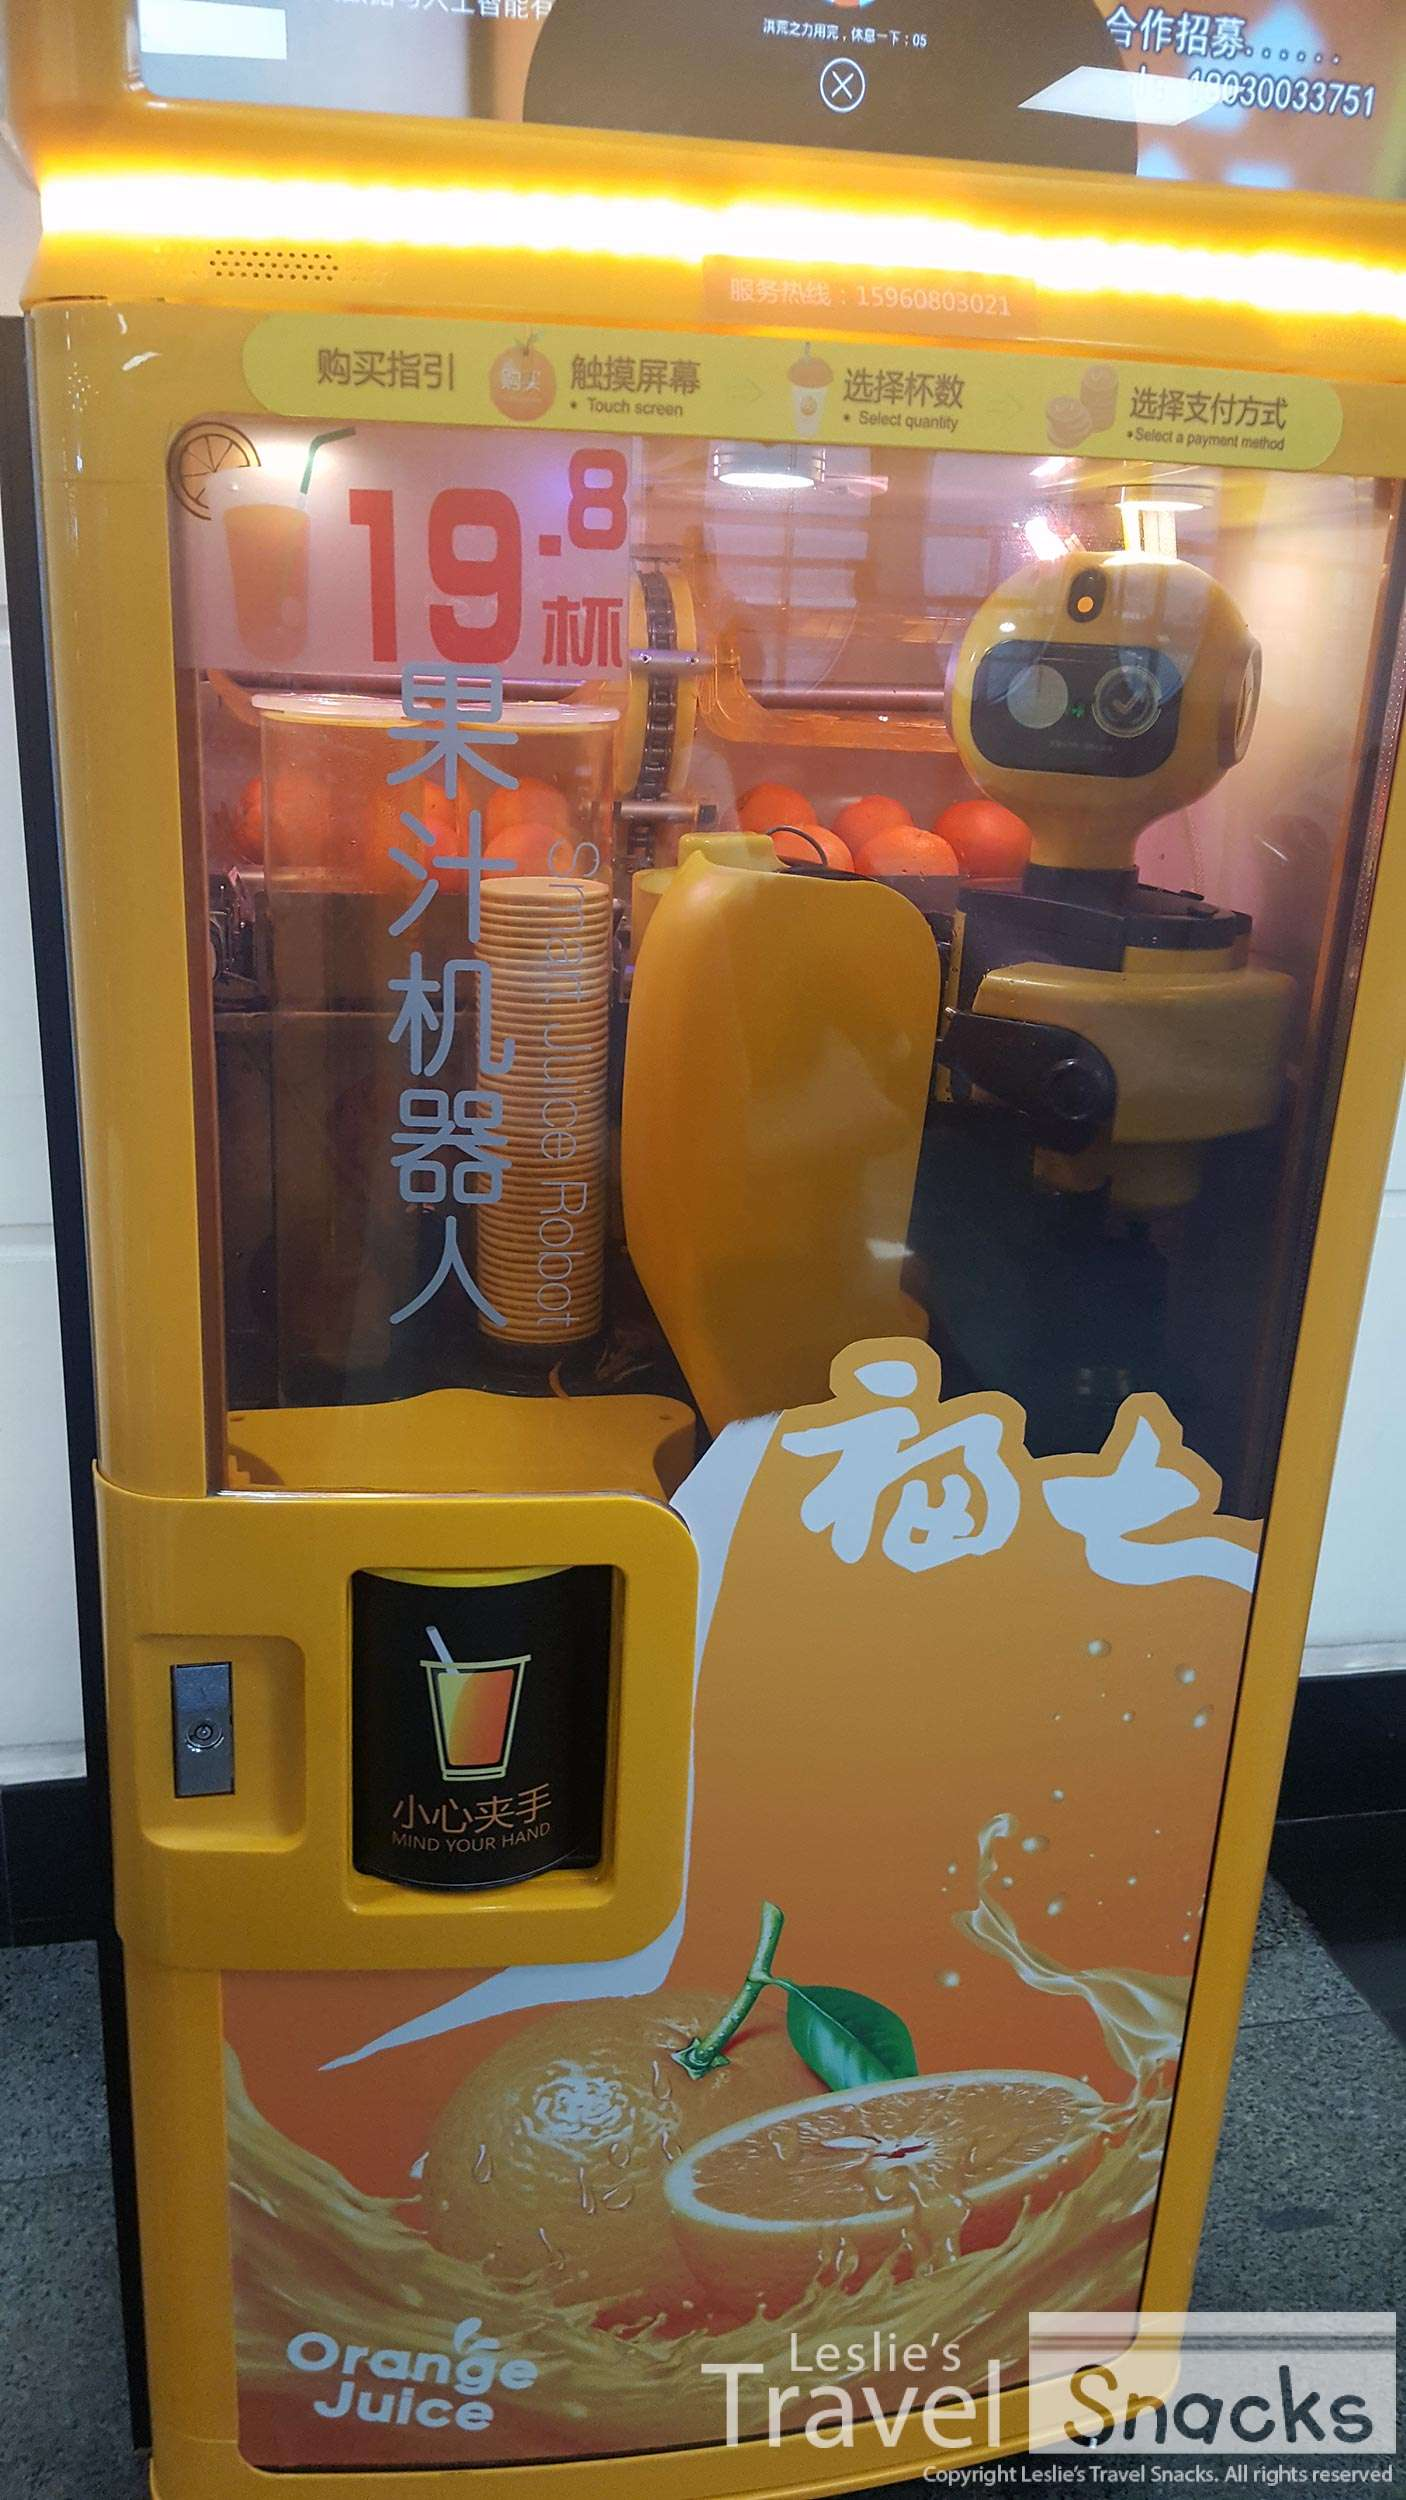 Fresh OJ in a vending maching - who woulda thunk.